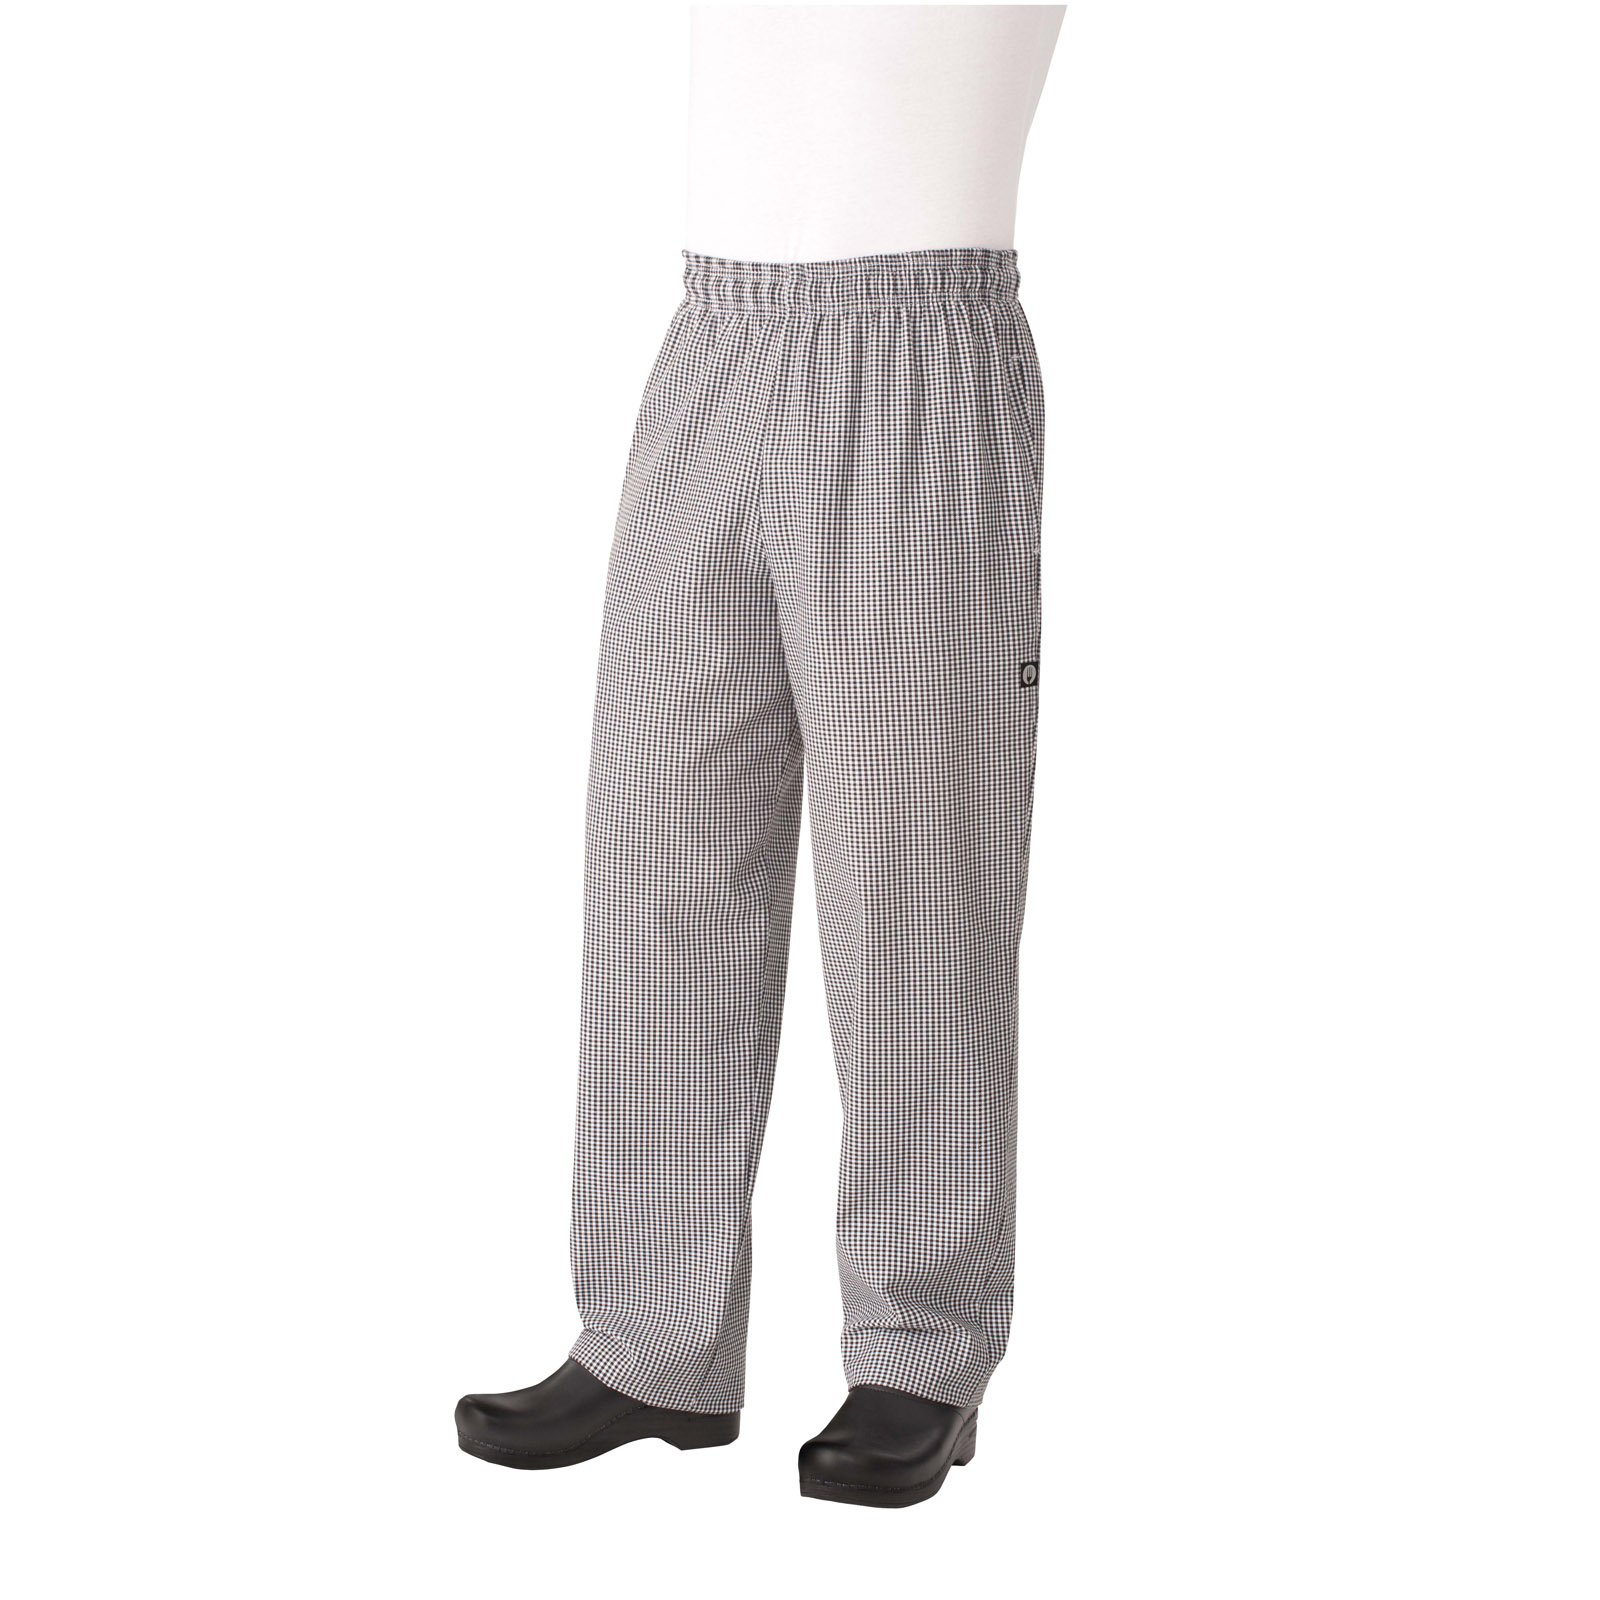 Chef Works NBCP0007XL chef's pants